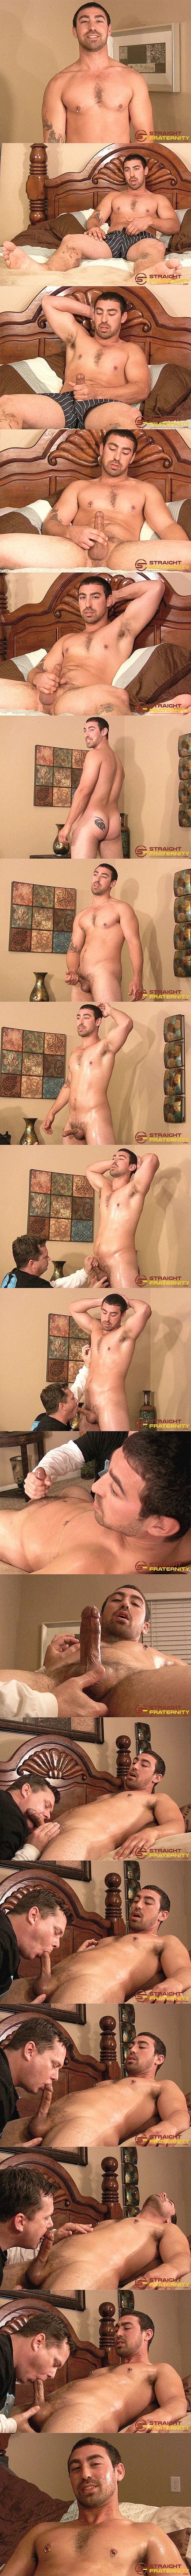 Straightfraternity - Ryan sucks and strokes masculine straight beefcake Blue's cock and finger-fucks Blue's tight virgin ass before Blue cums in Ryan's mouth in Edging and Assplay Suit Him Fine 02